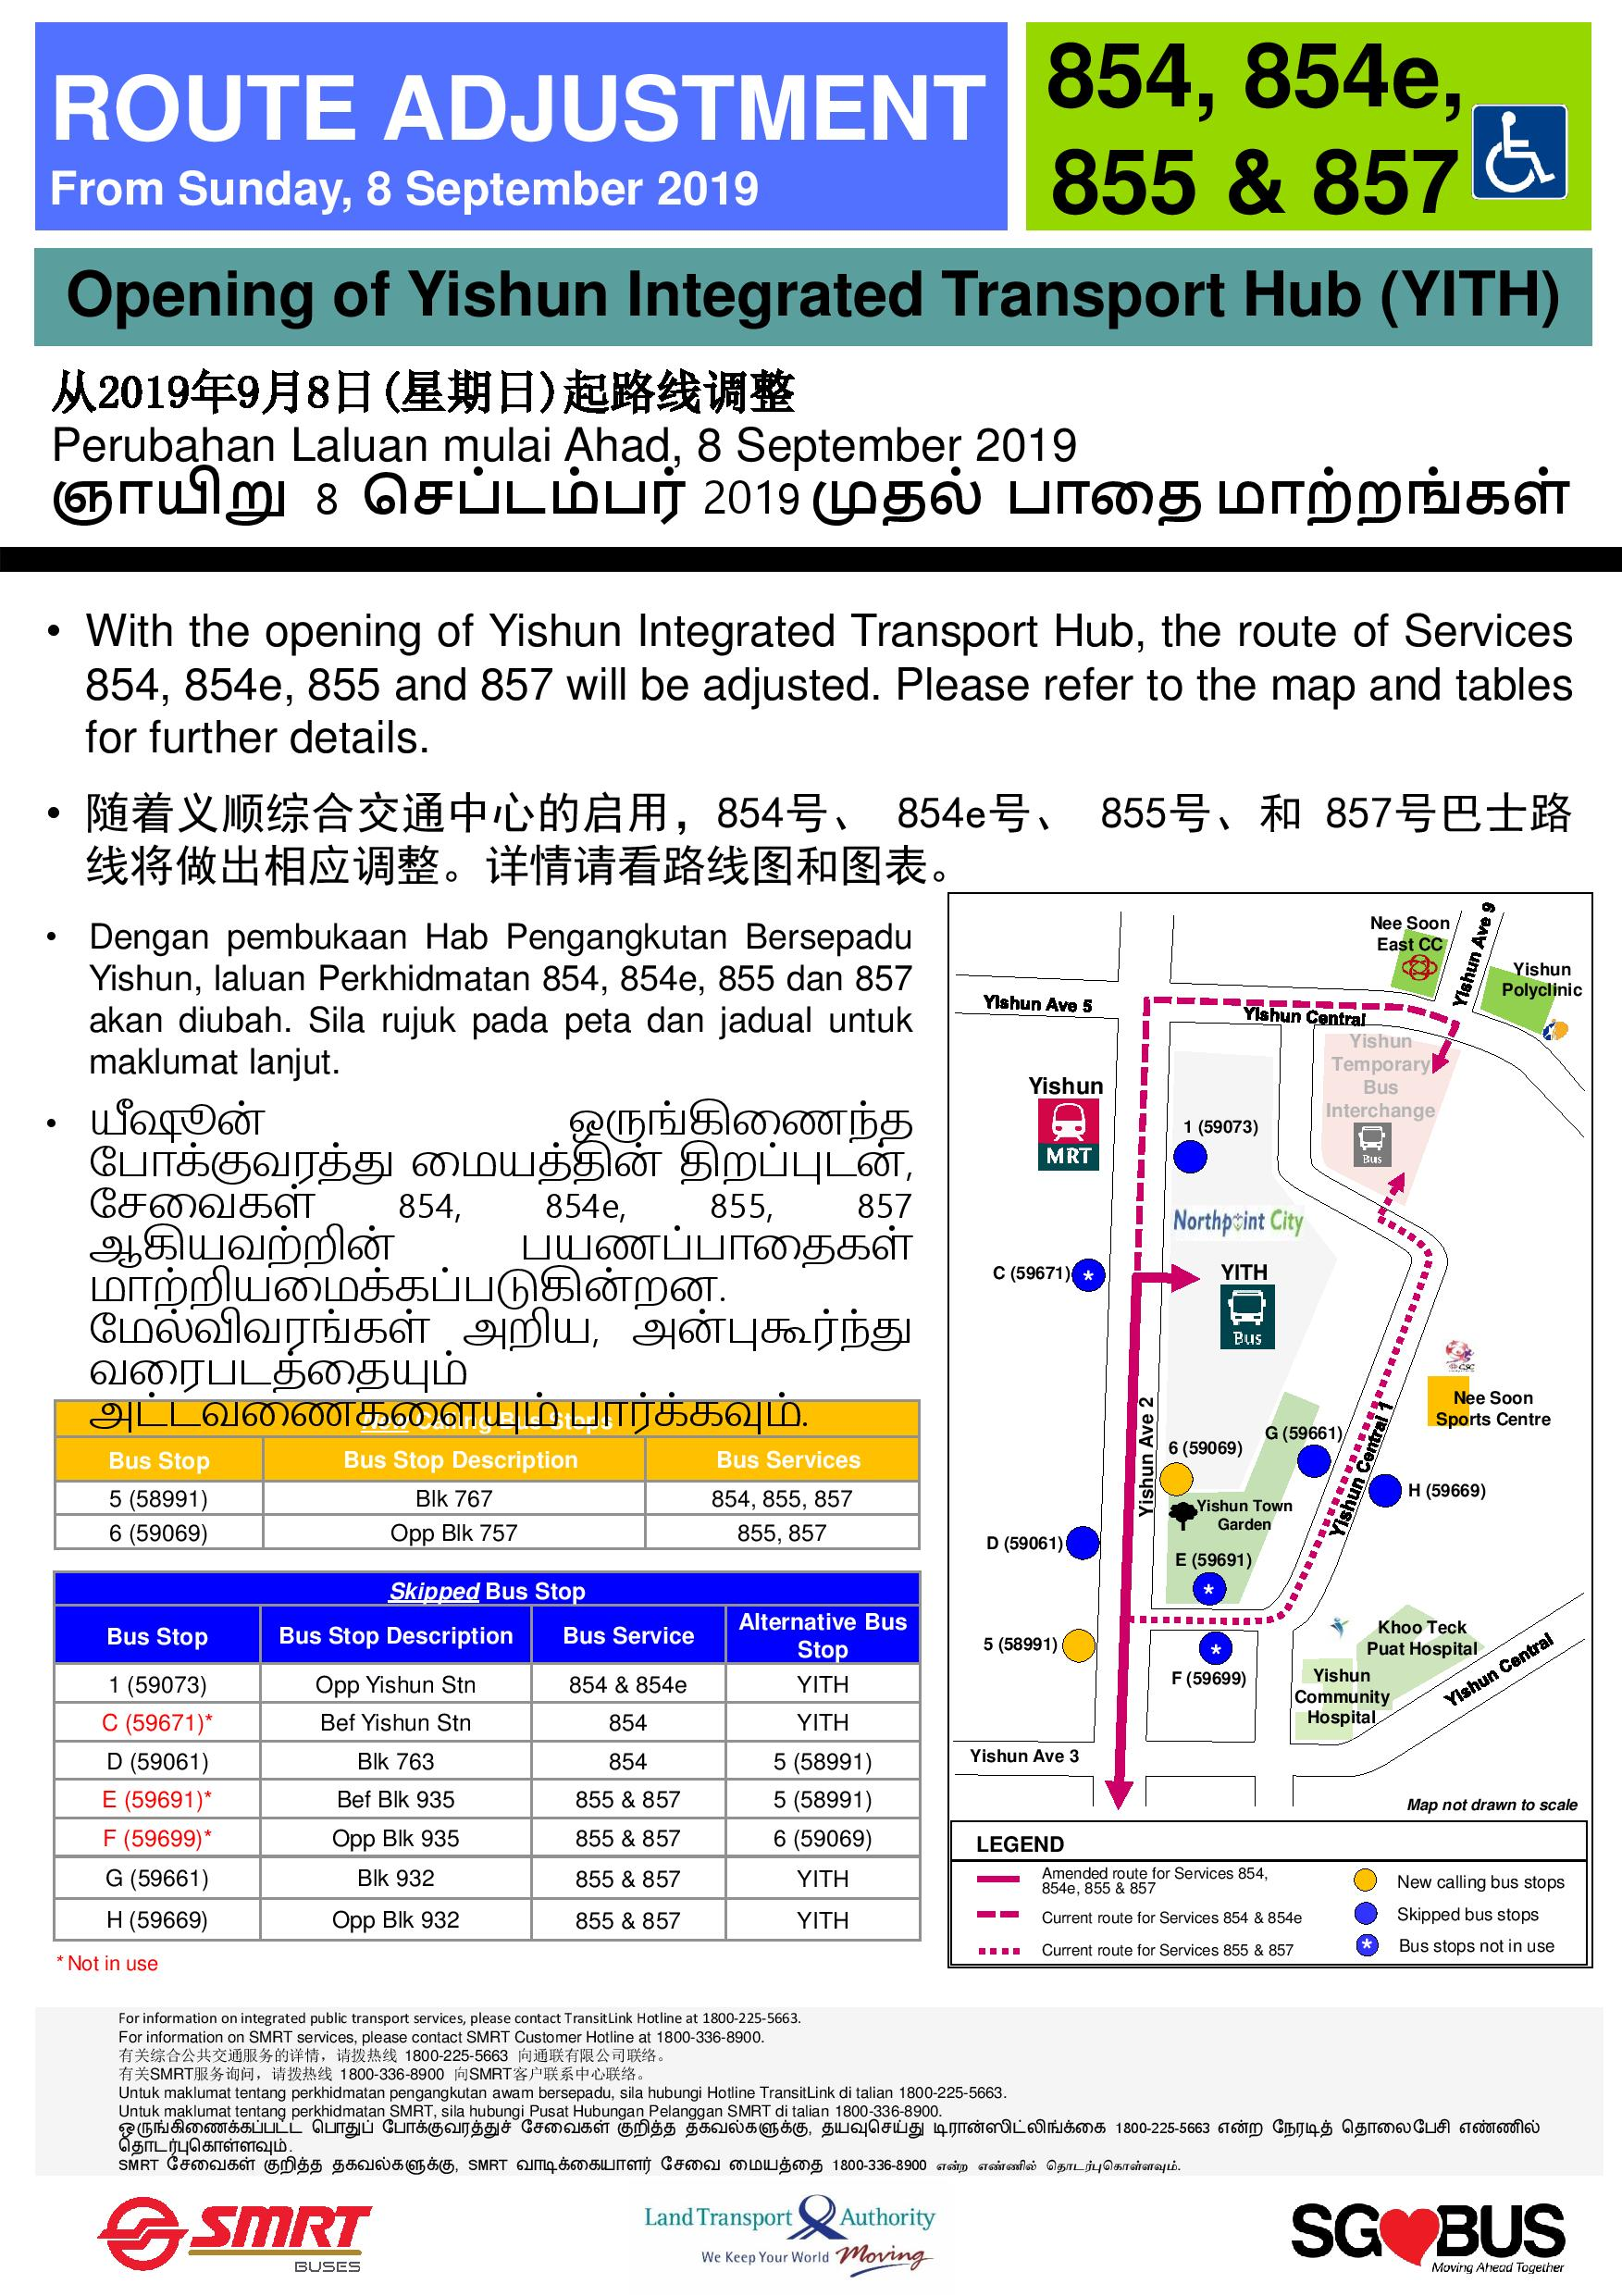 [Updated] Route Amendment for Services 854, 854e, 855 & 857 - Opening of Yishun Integrated Transport Hub